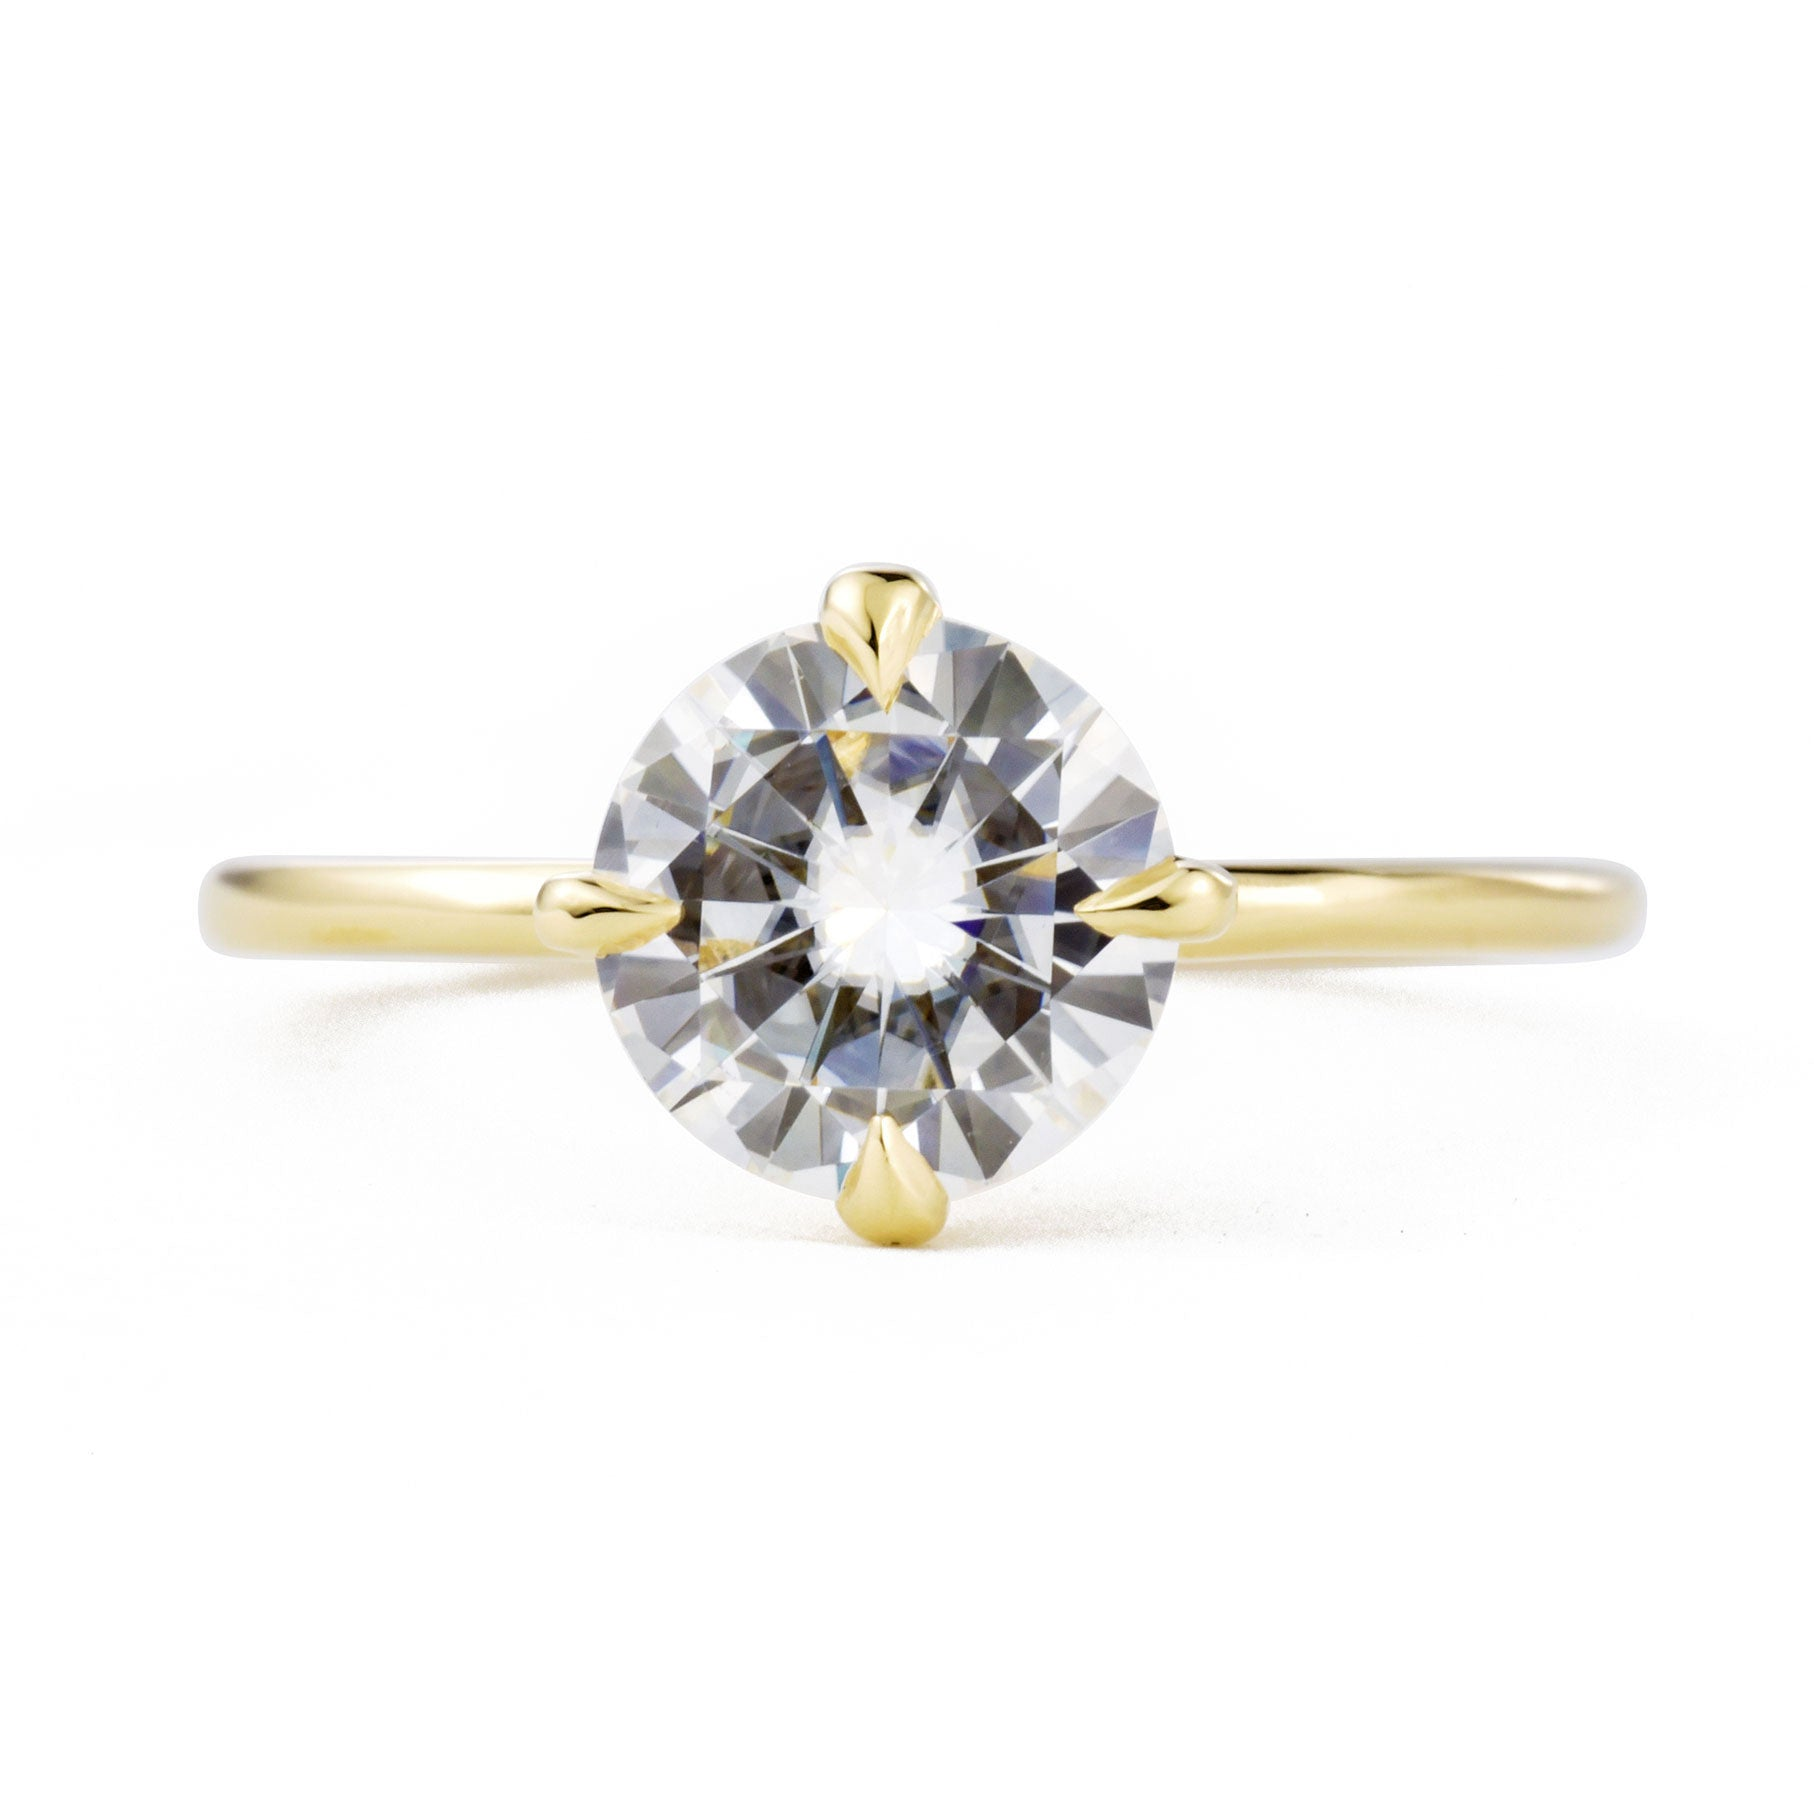 Vera 1.5ct Moissanite Solitaire Engagement Ring shown from the front in yellow gold